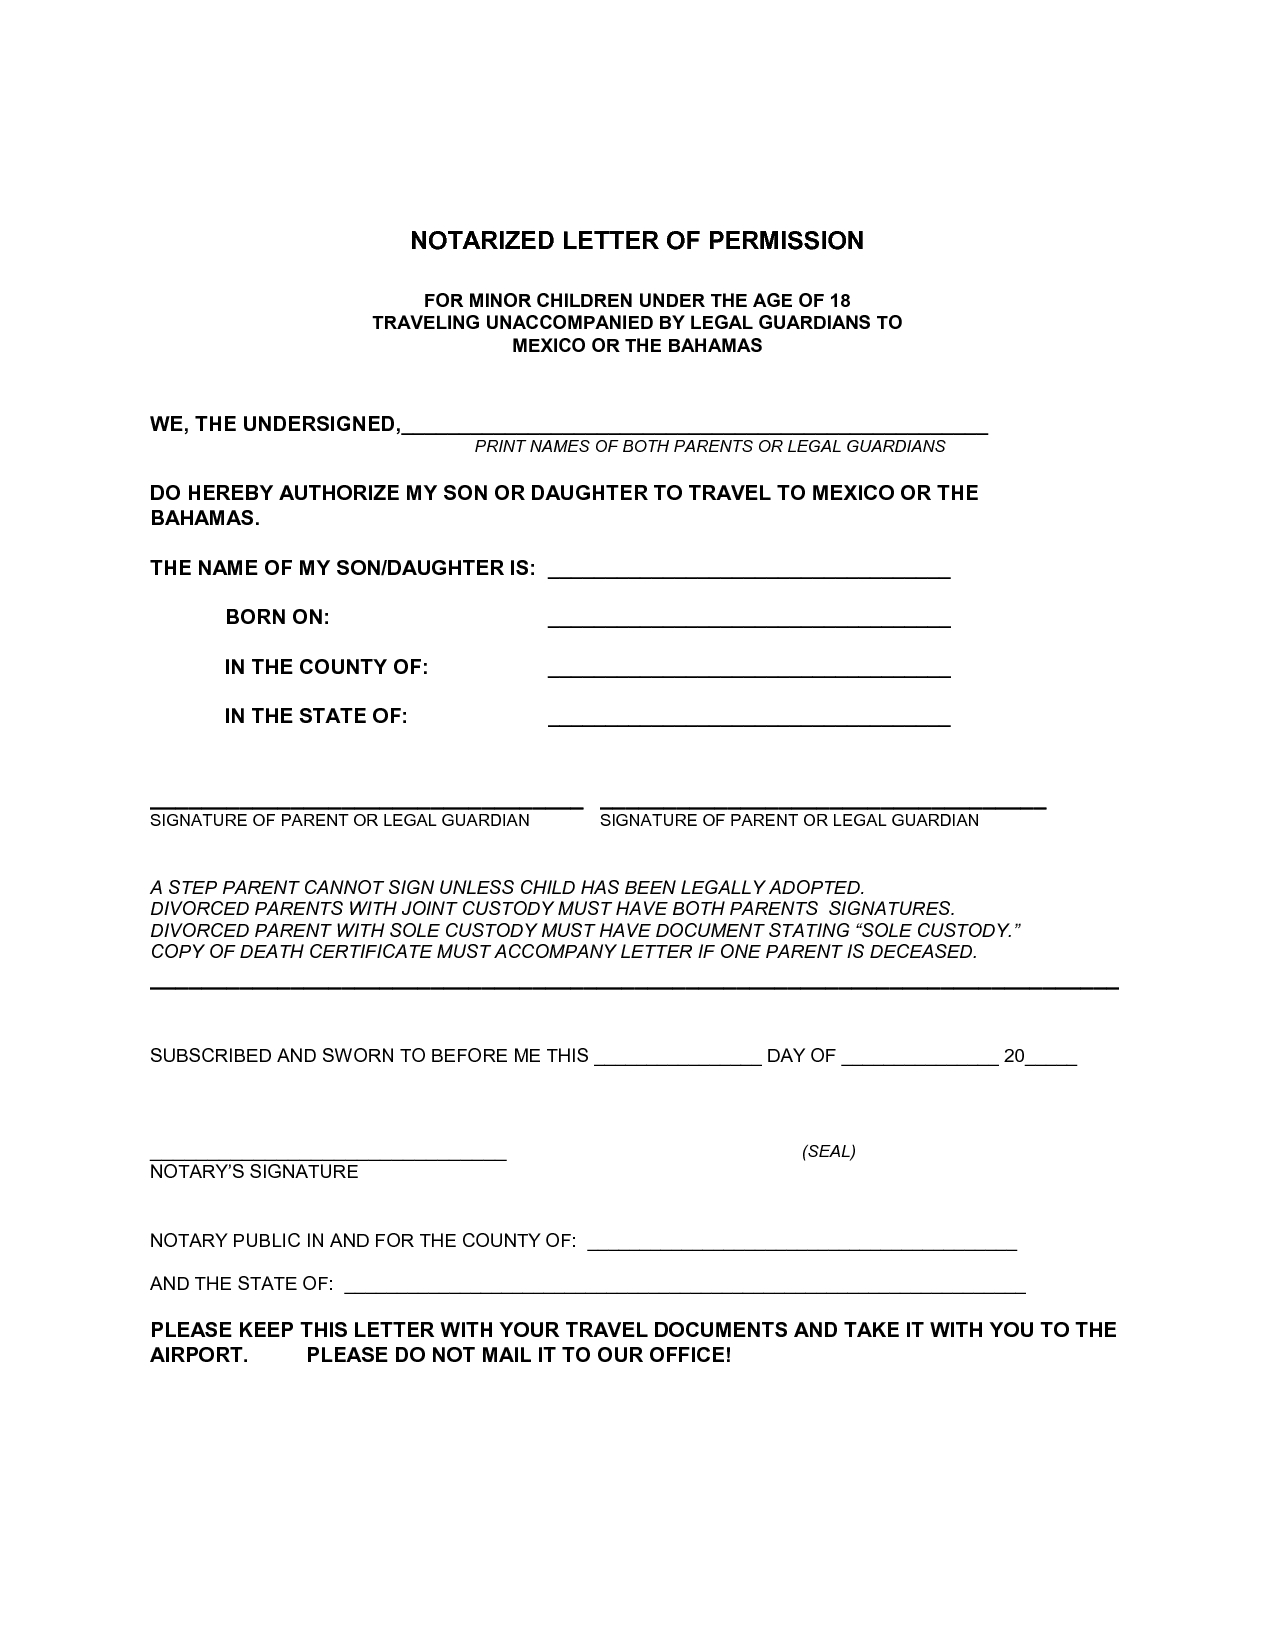 Notarized Letter Template for Child Travel - How to Write Notarized Letter Letter format formal Sample